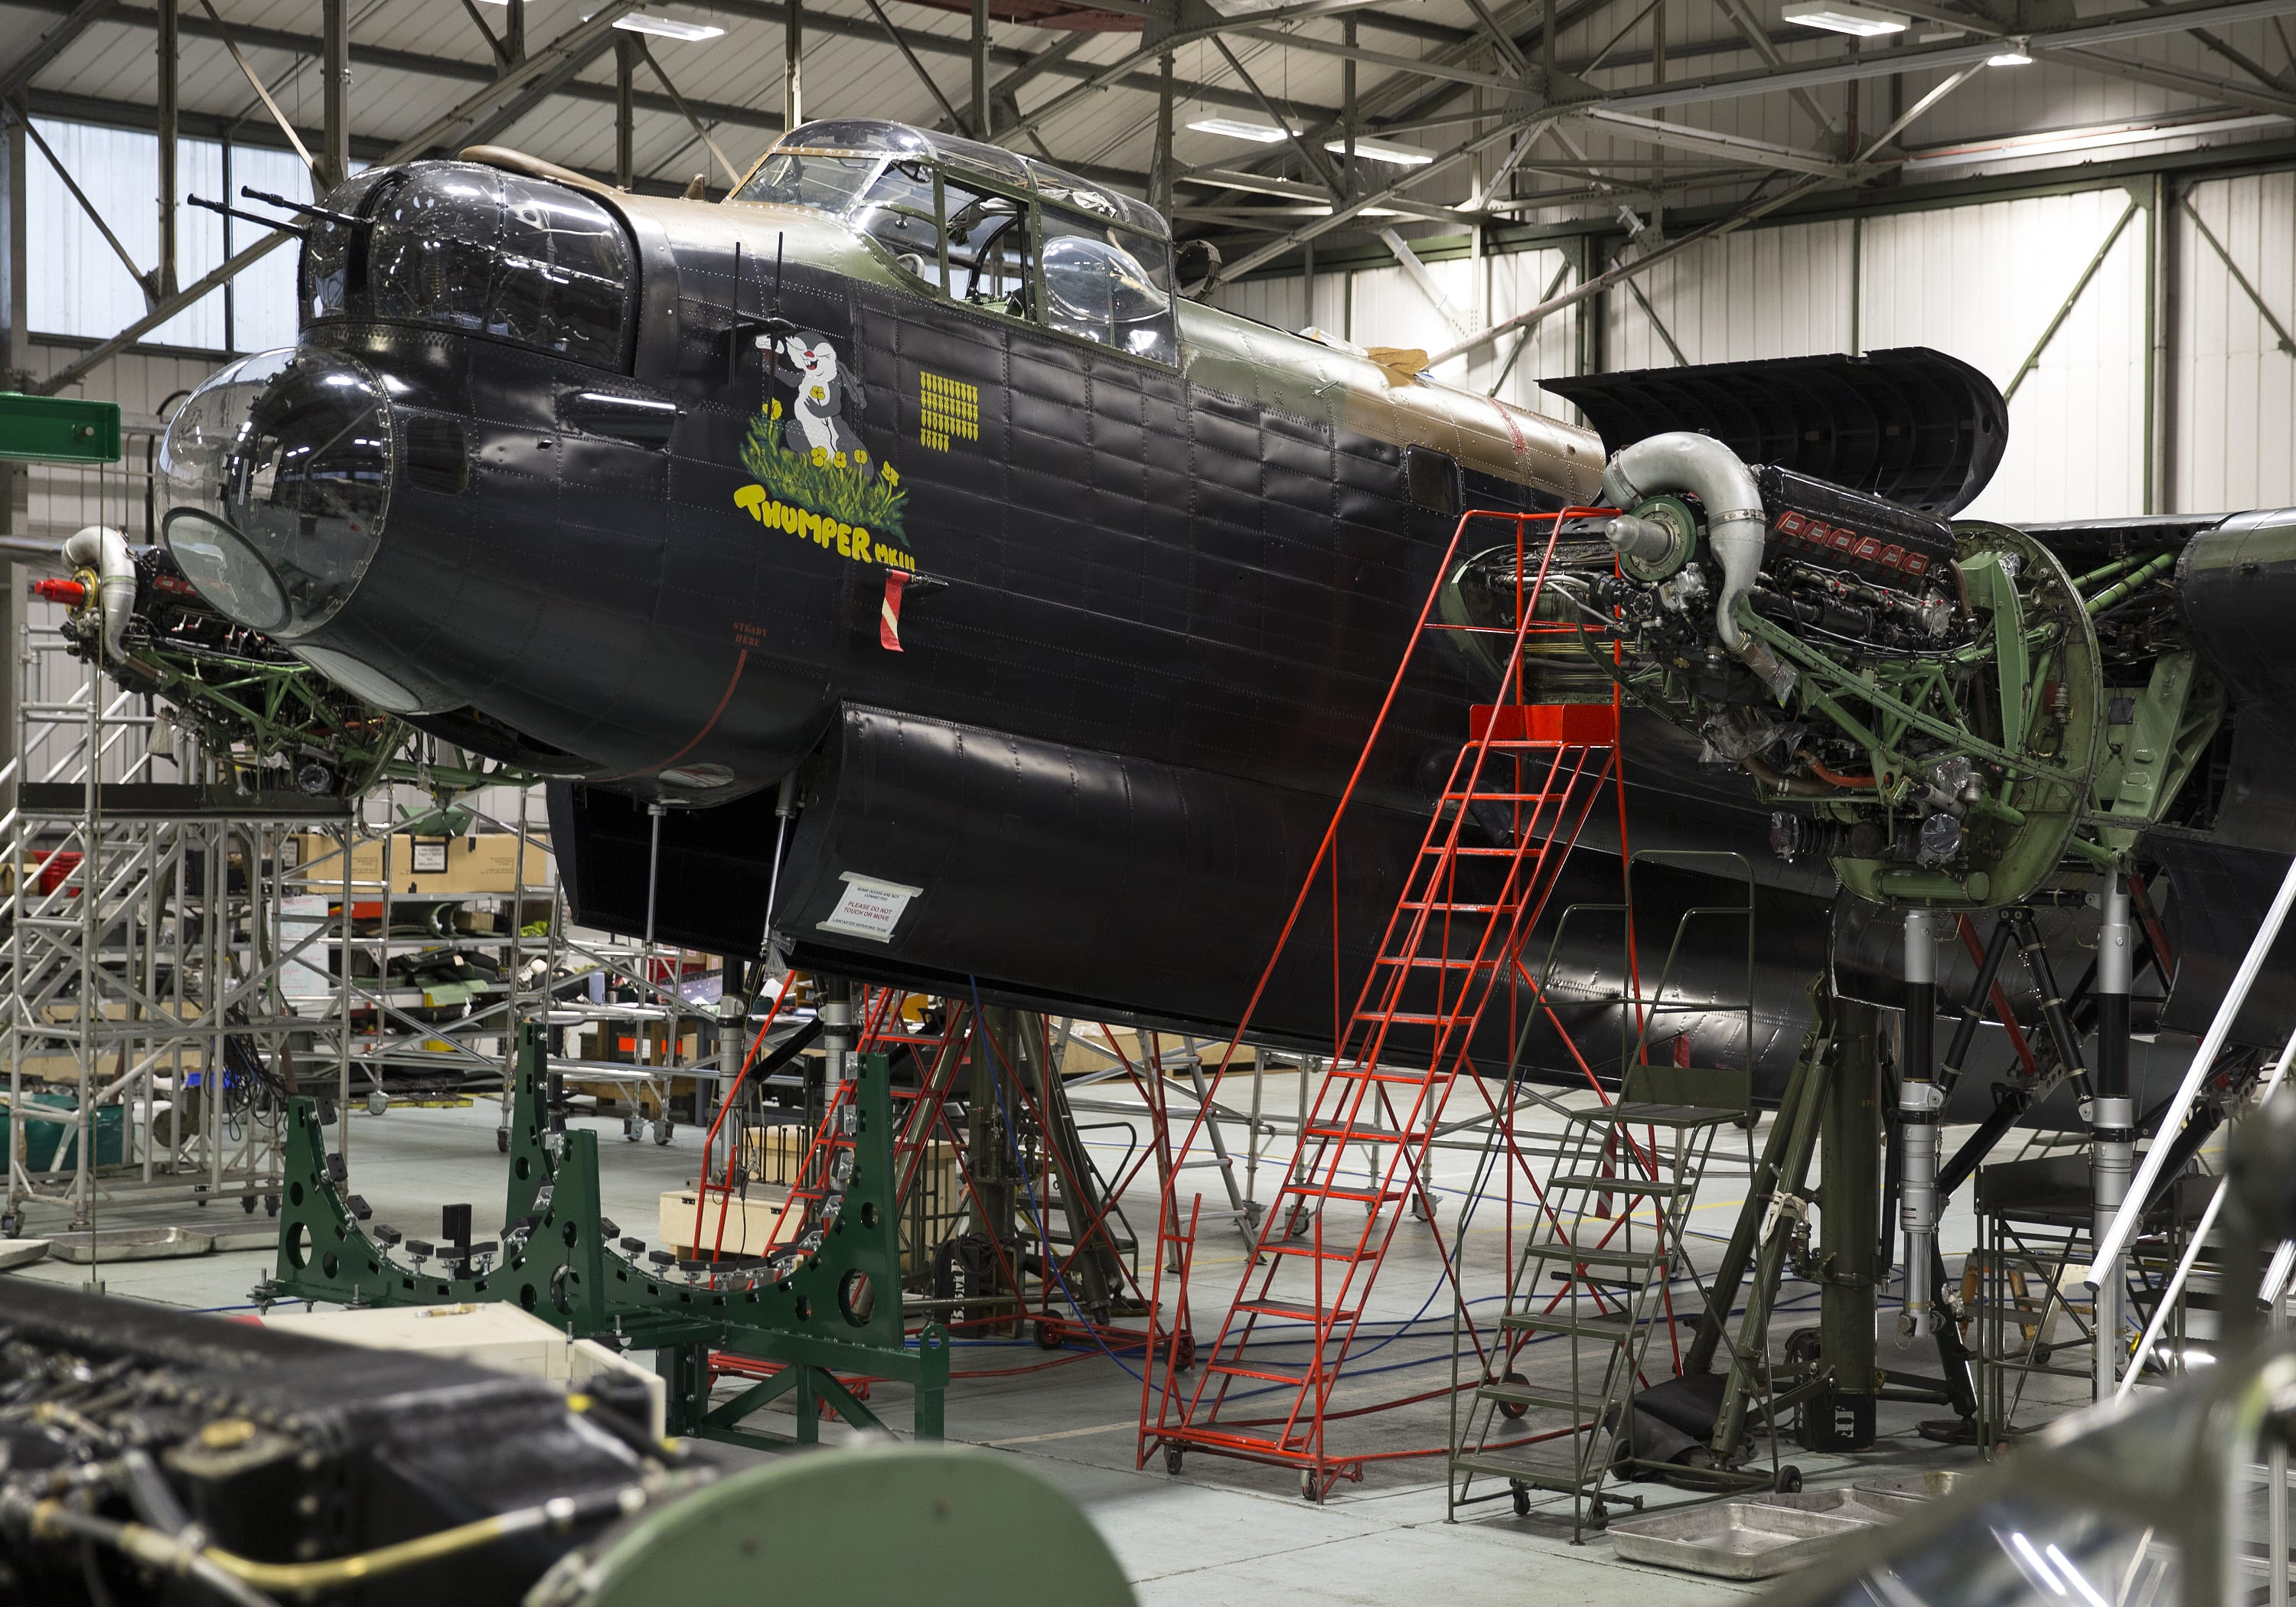 'Thumper', the Avro Lancaster Mk III undergoing maintenance in the BBMF hangar at RAF Coningsby.